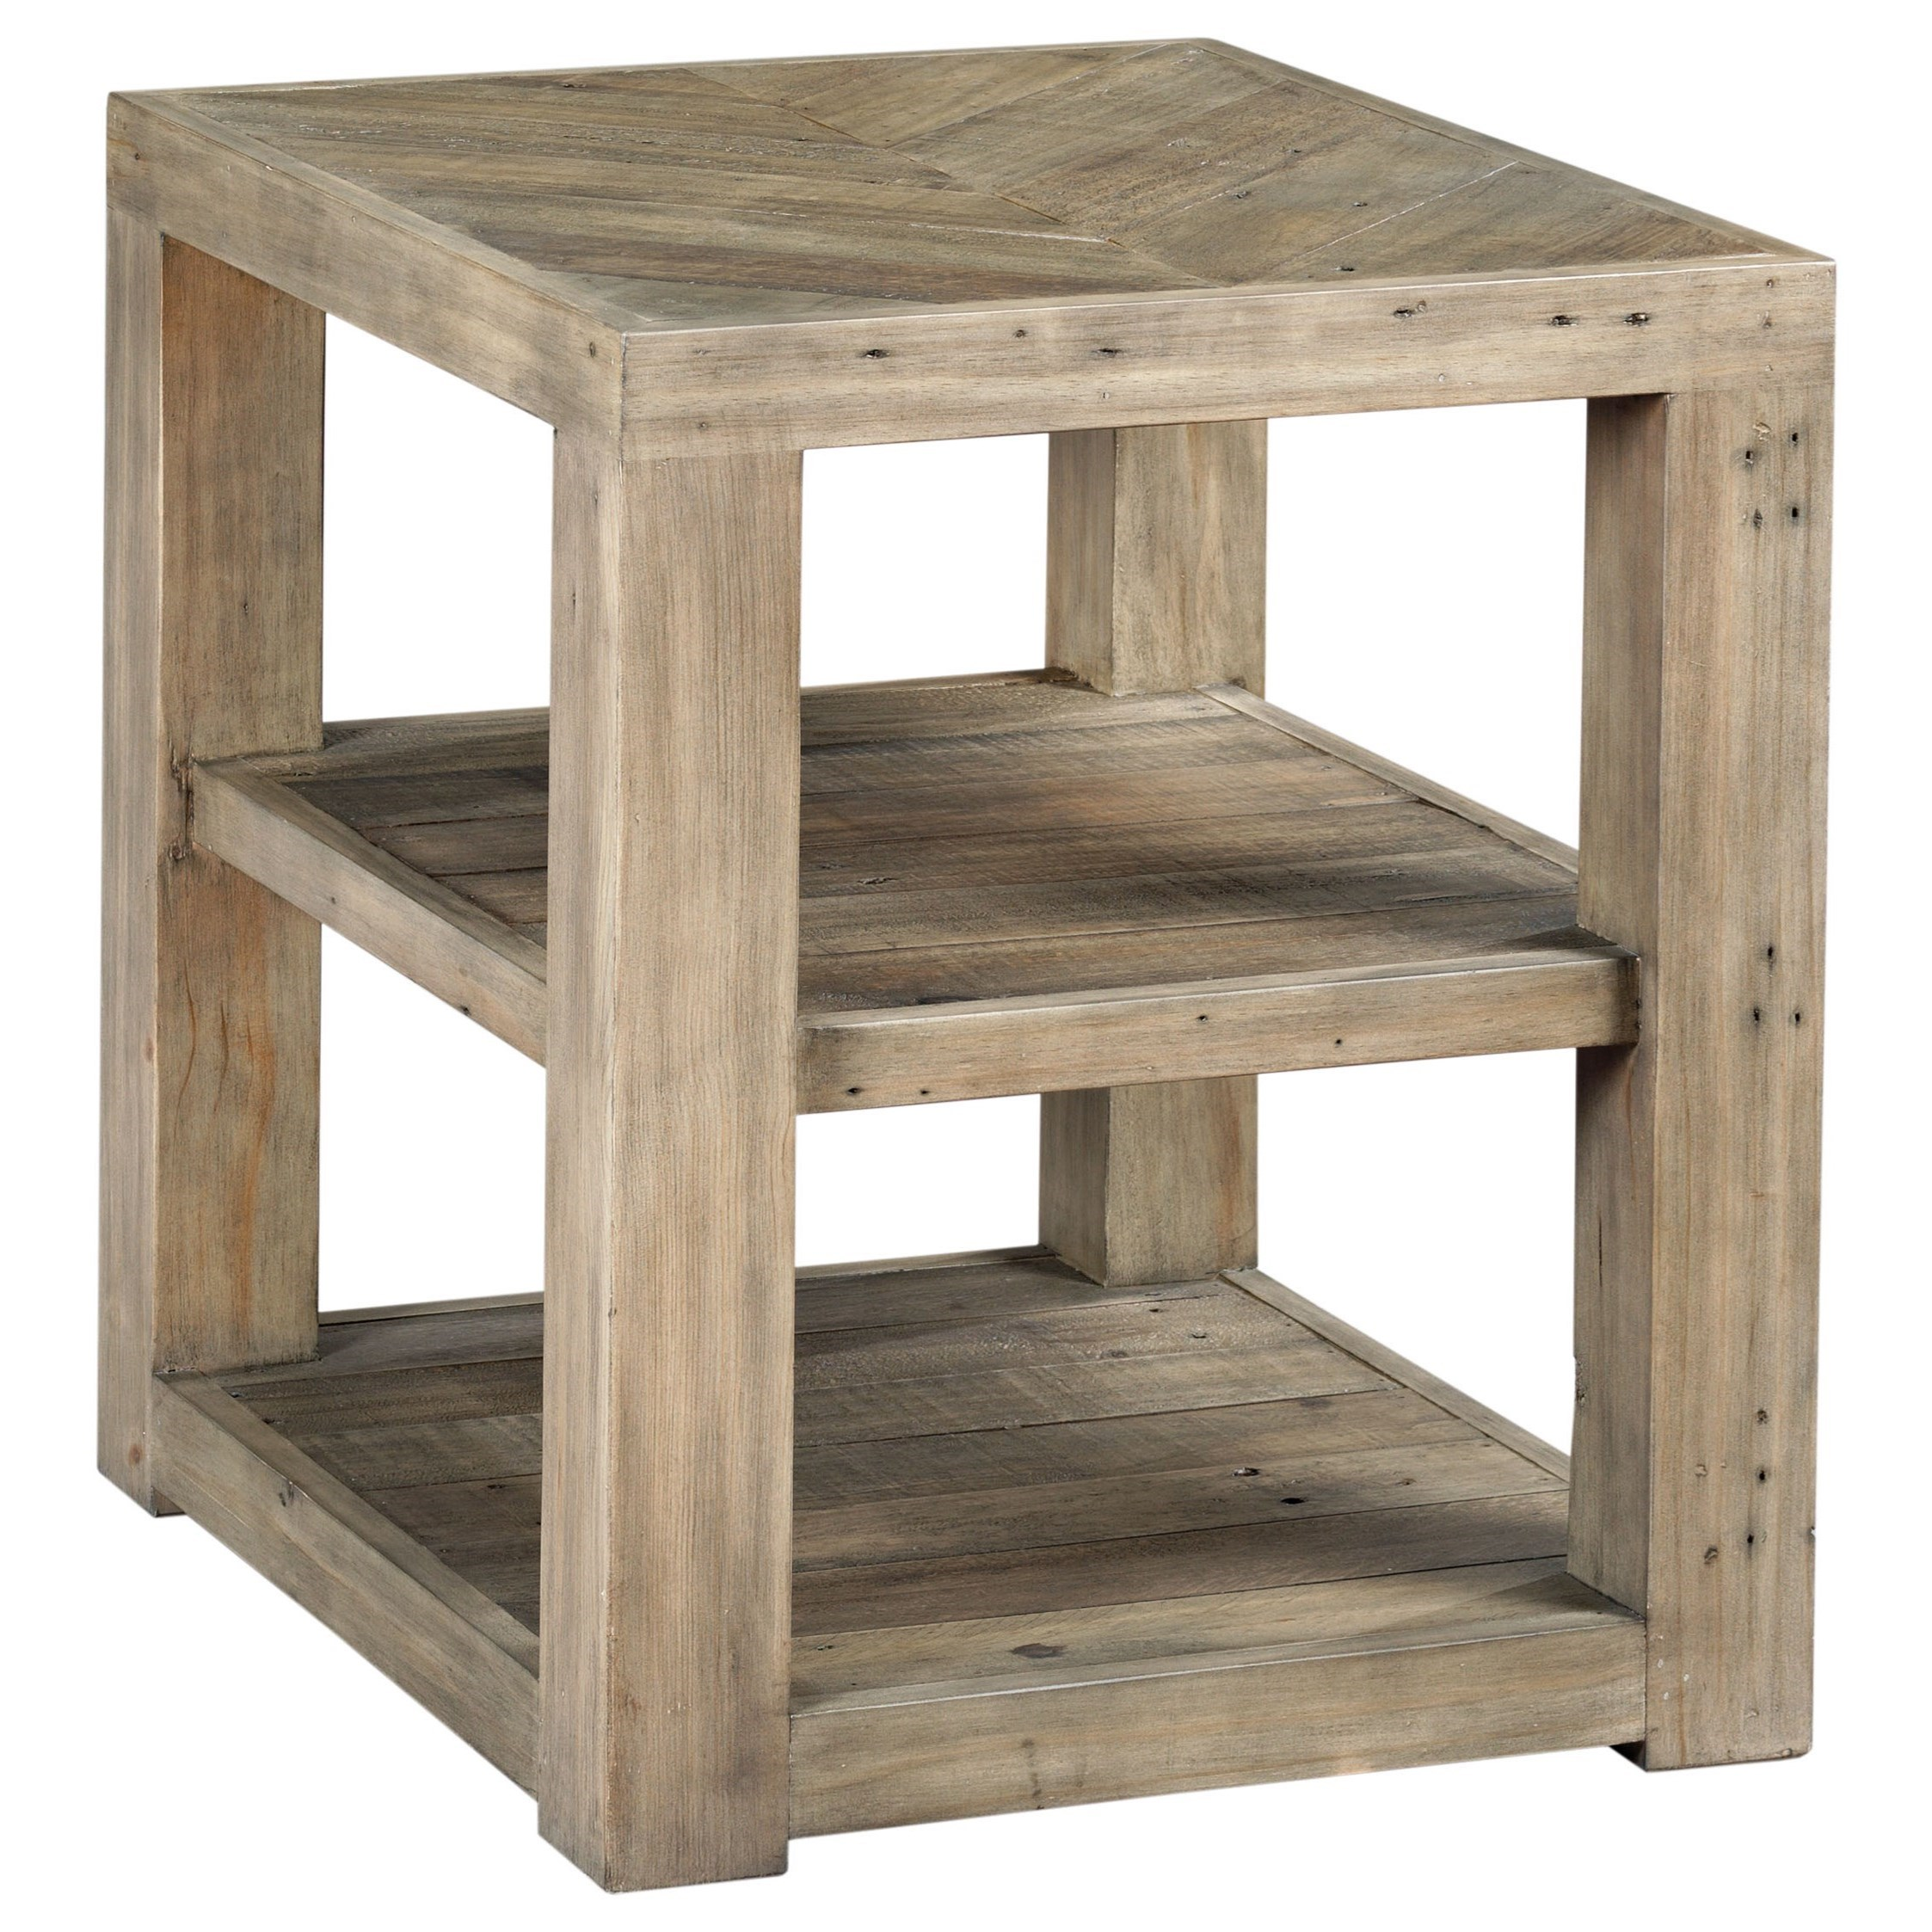 Reclamation Place End Table by Hammary at Red Knot